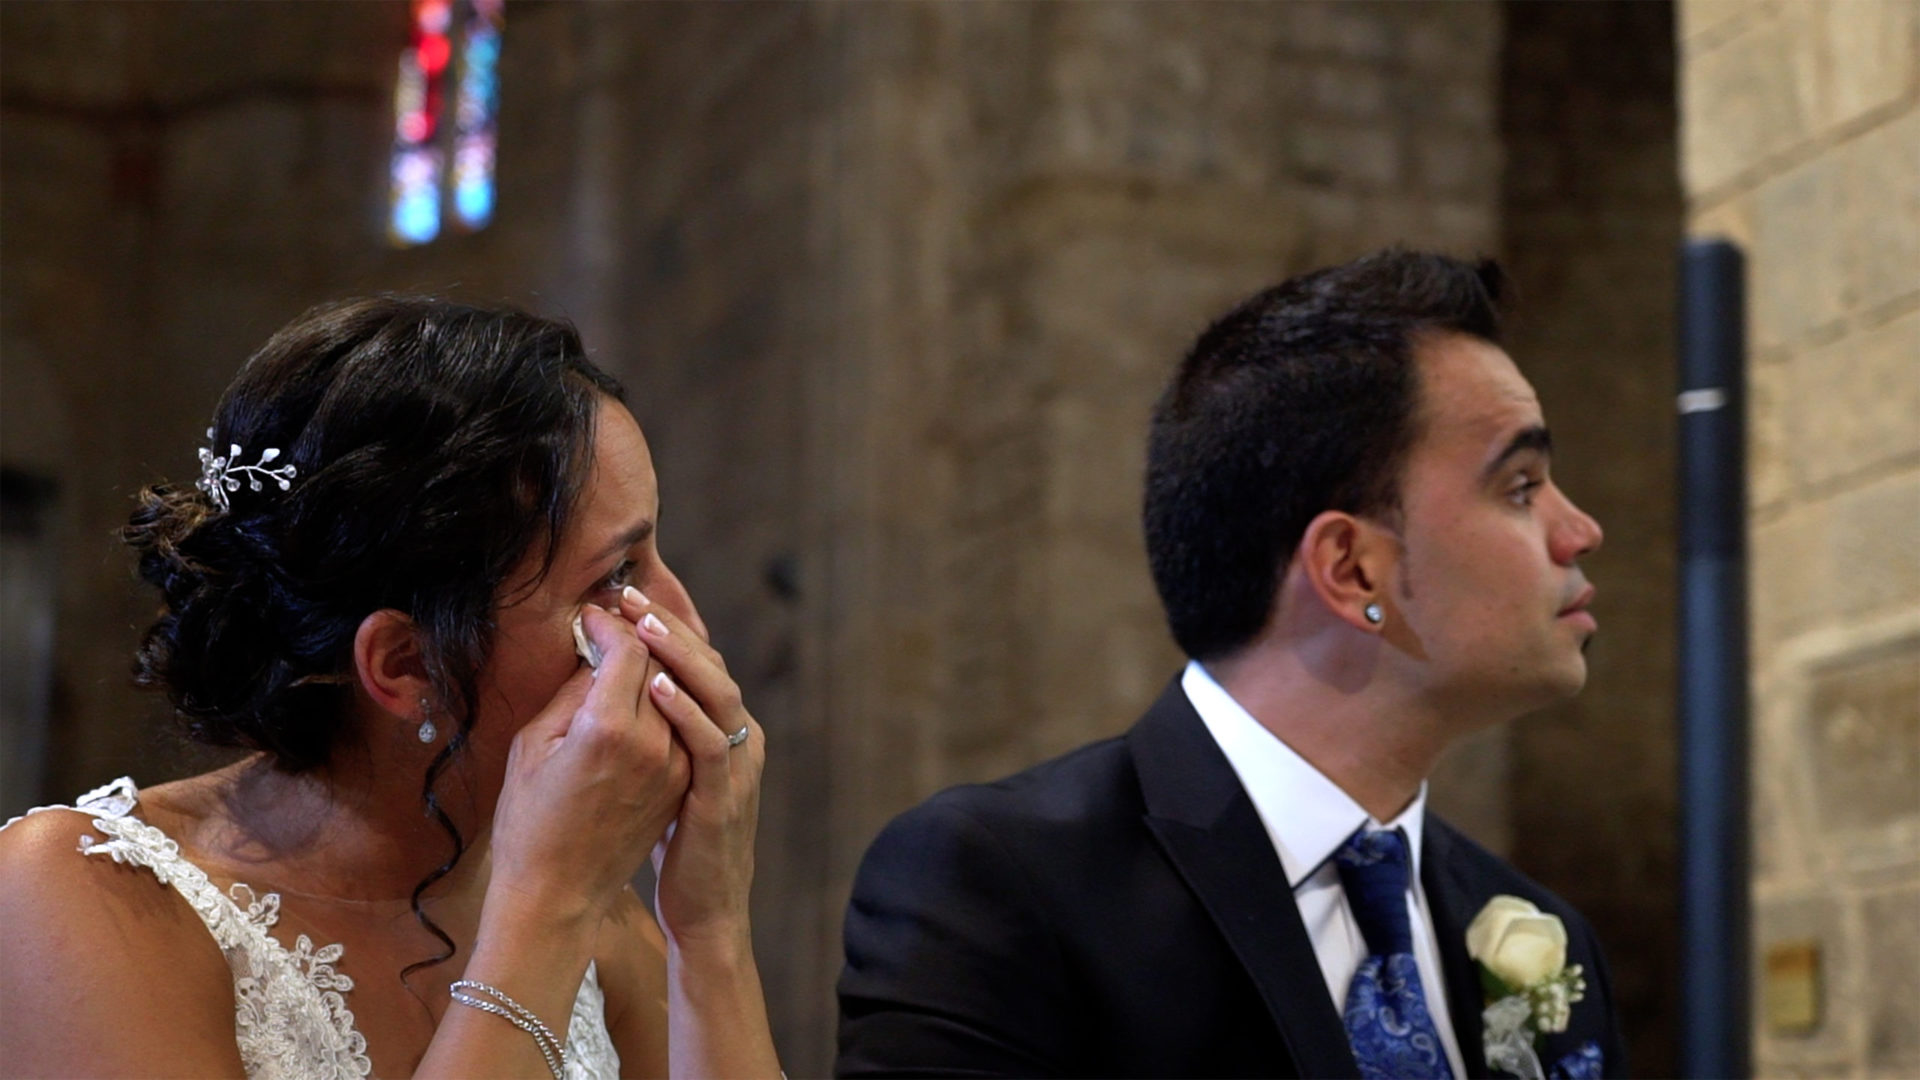 Novia llorando en la iglesia. Bride crying in church.